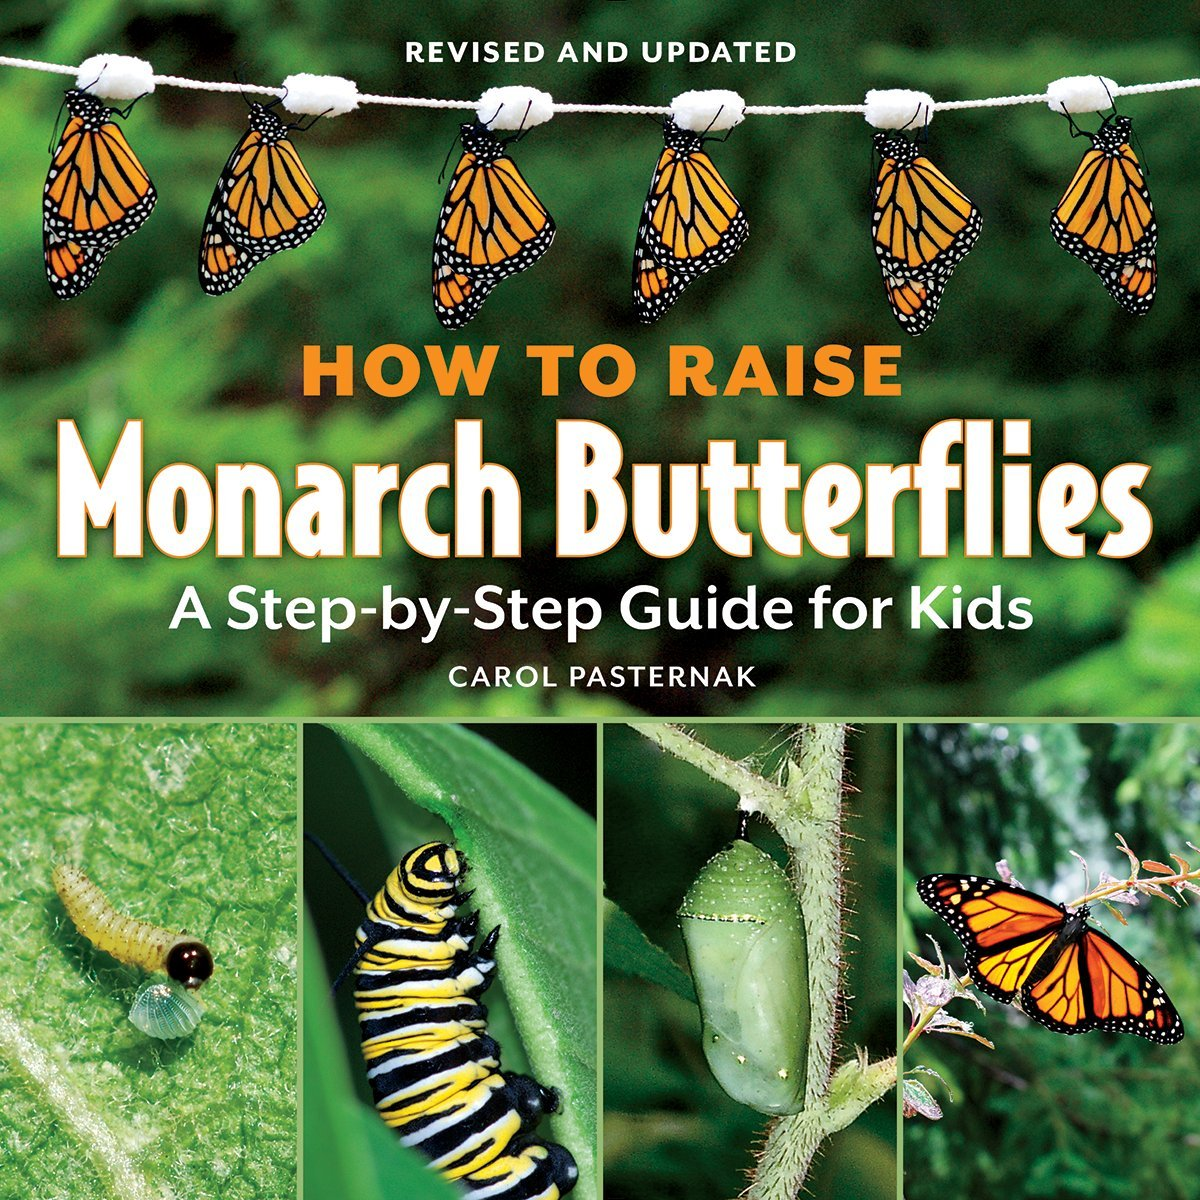 How To Raise Monarch Butterflies: A Stepbystep Guide For Kids (how It  Works): Carol Pasternak: 9781770850026: Amazon: Books